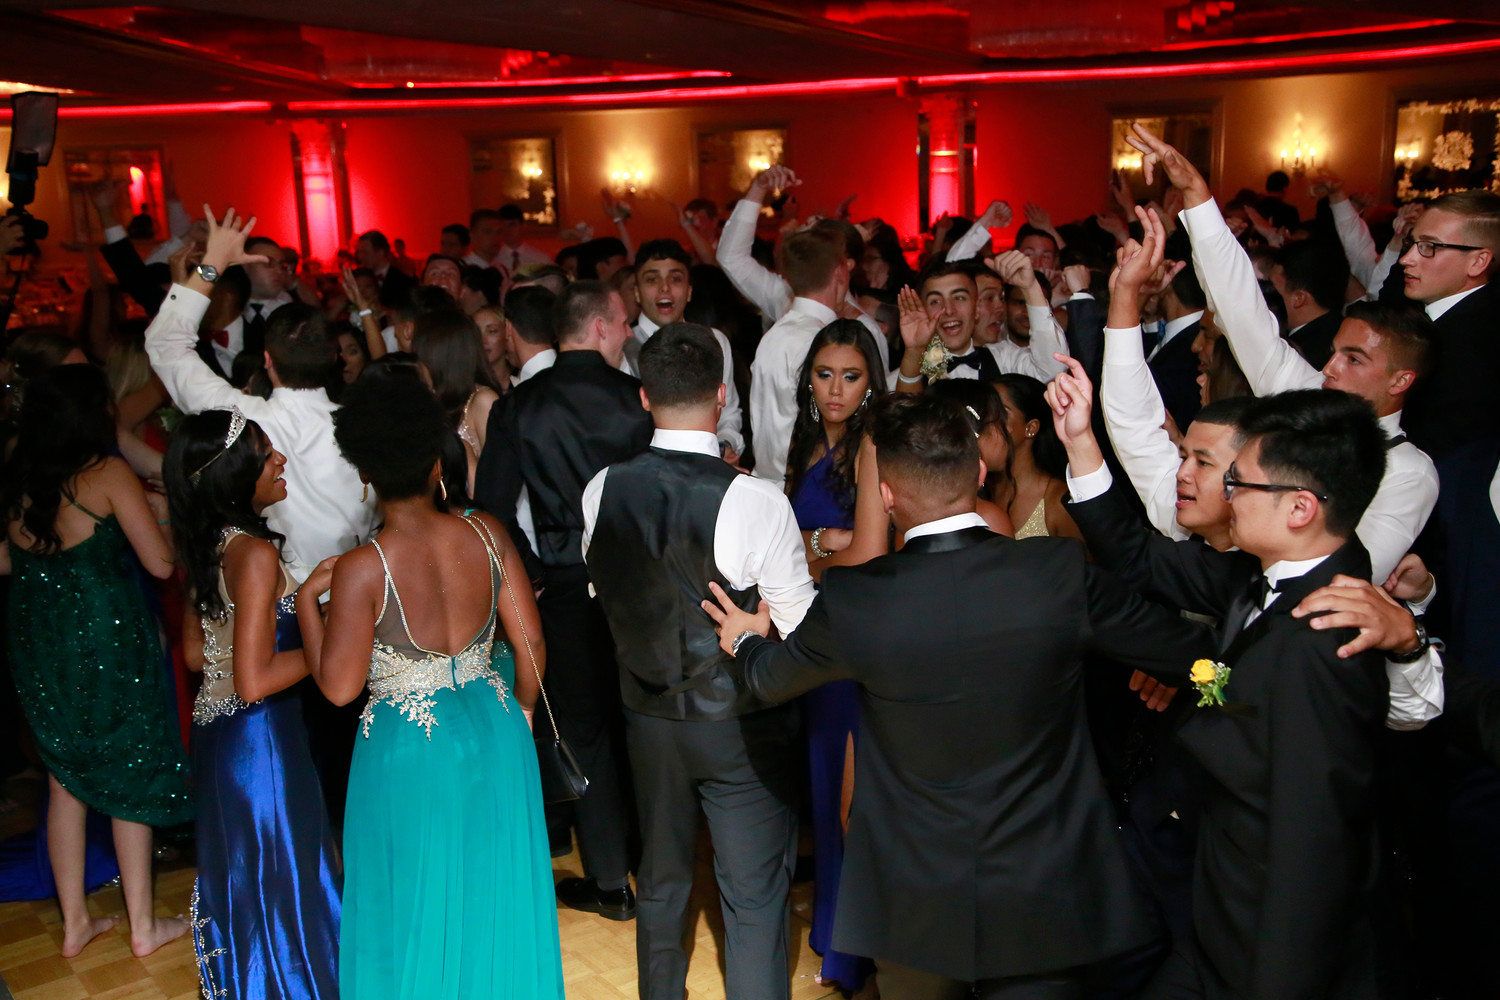 Oceanside's prom for 2018 was held at the Sands in Atlantic Beach. Most went to Dawn Delirium after.